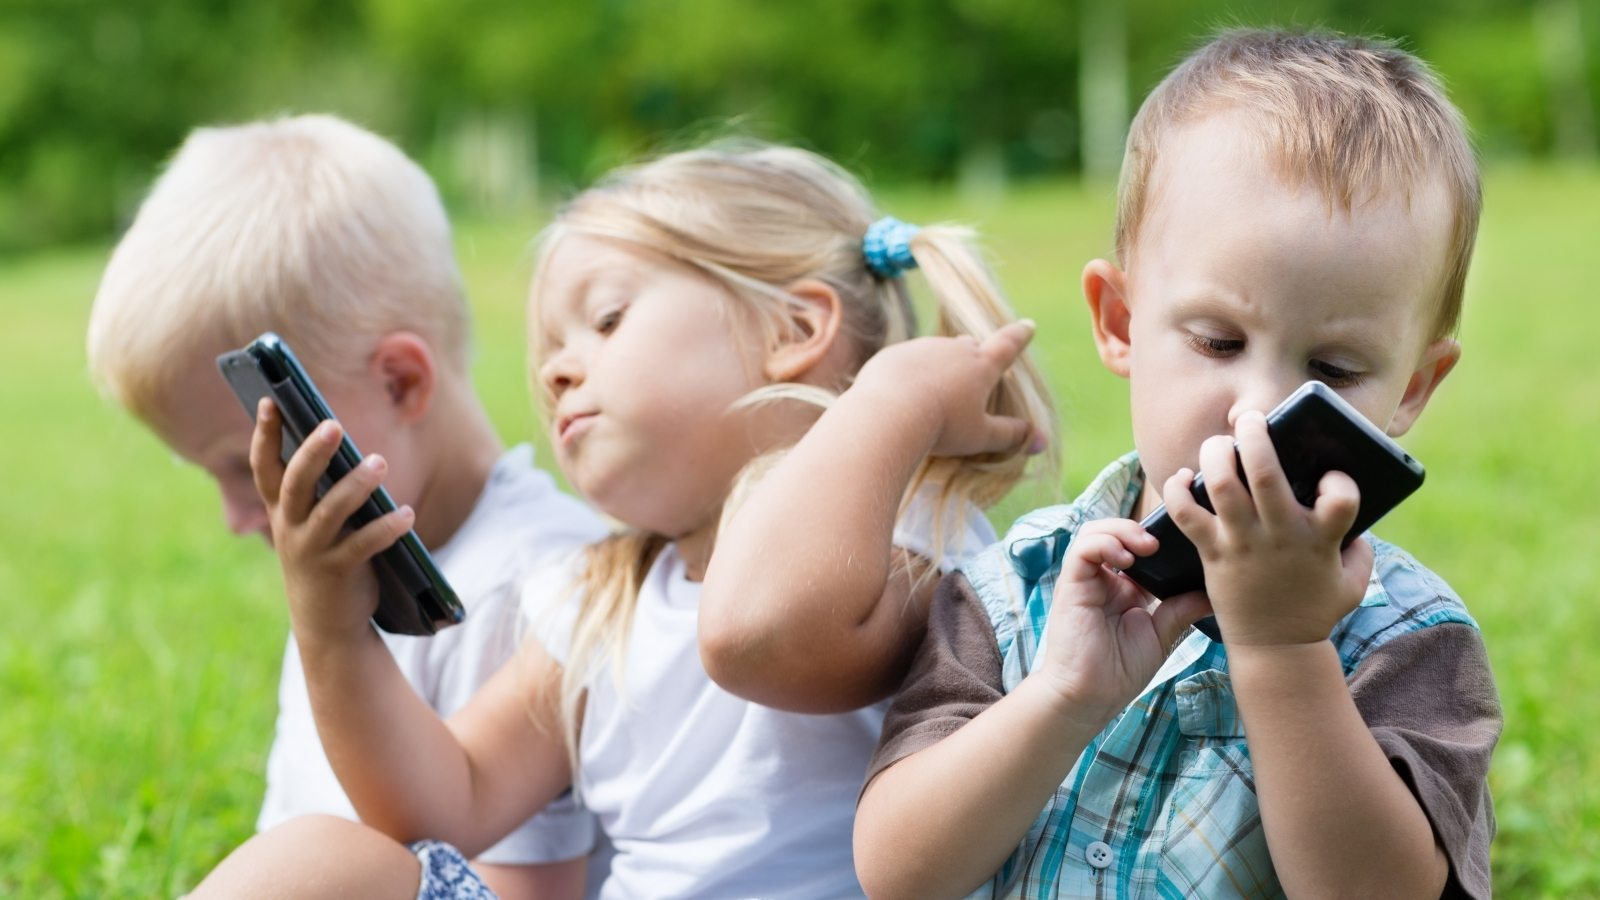 This is a photo of three very young children outdoors playing with smartphones.